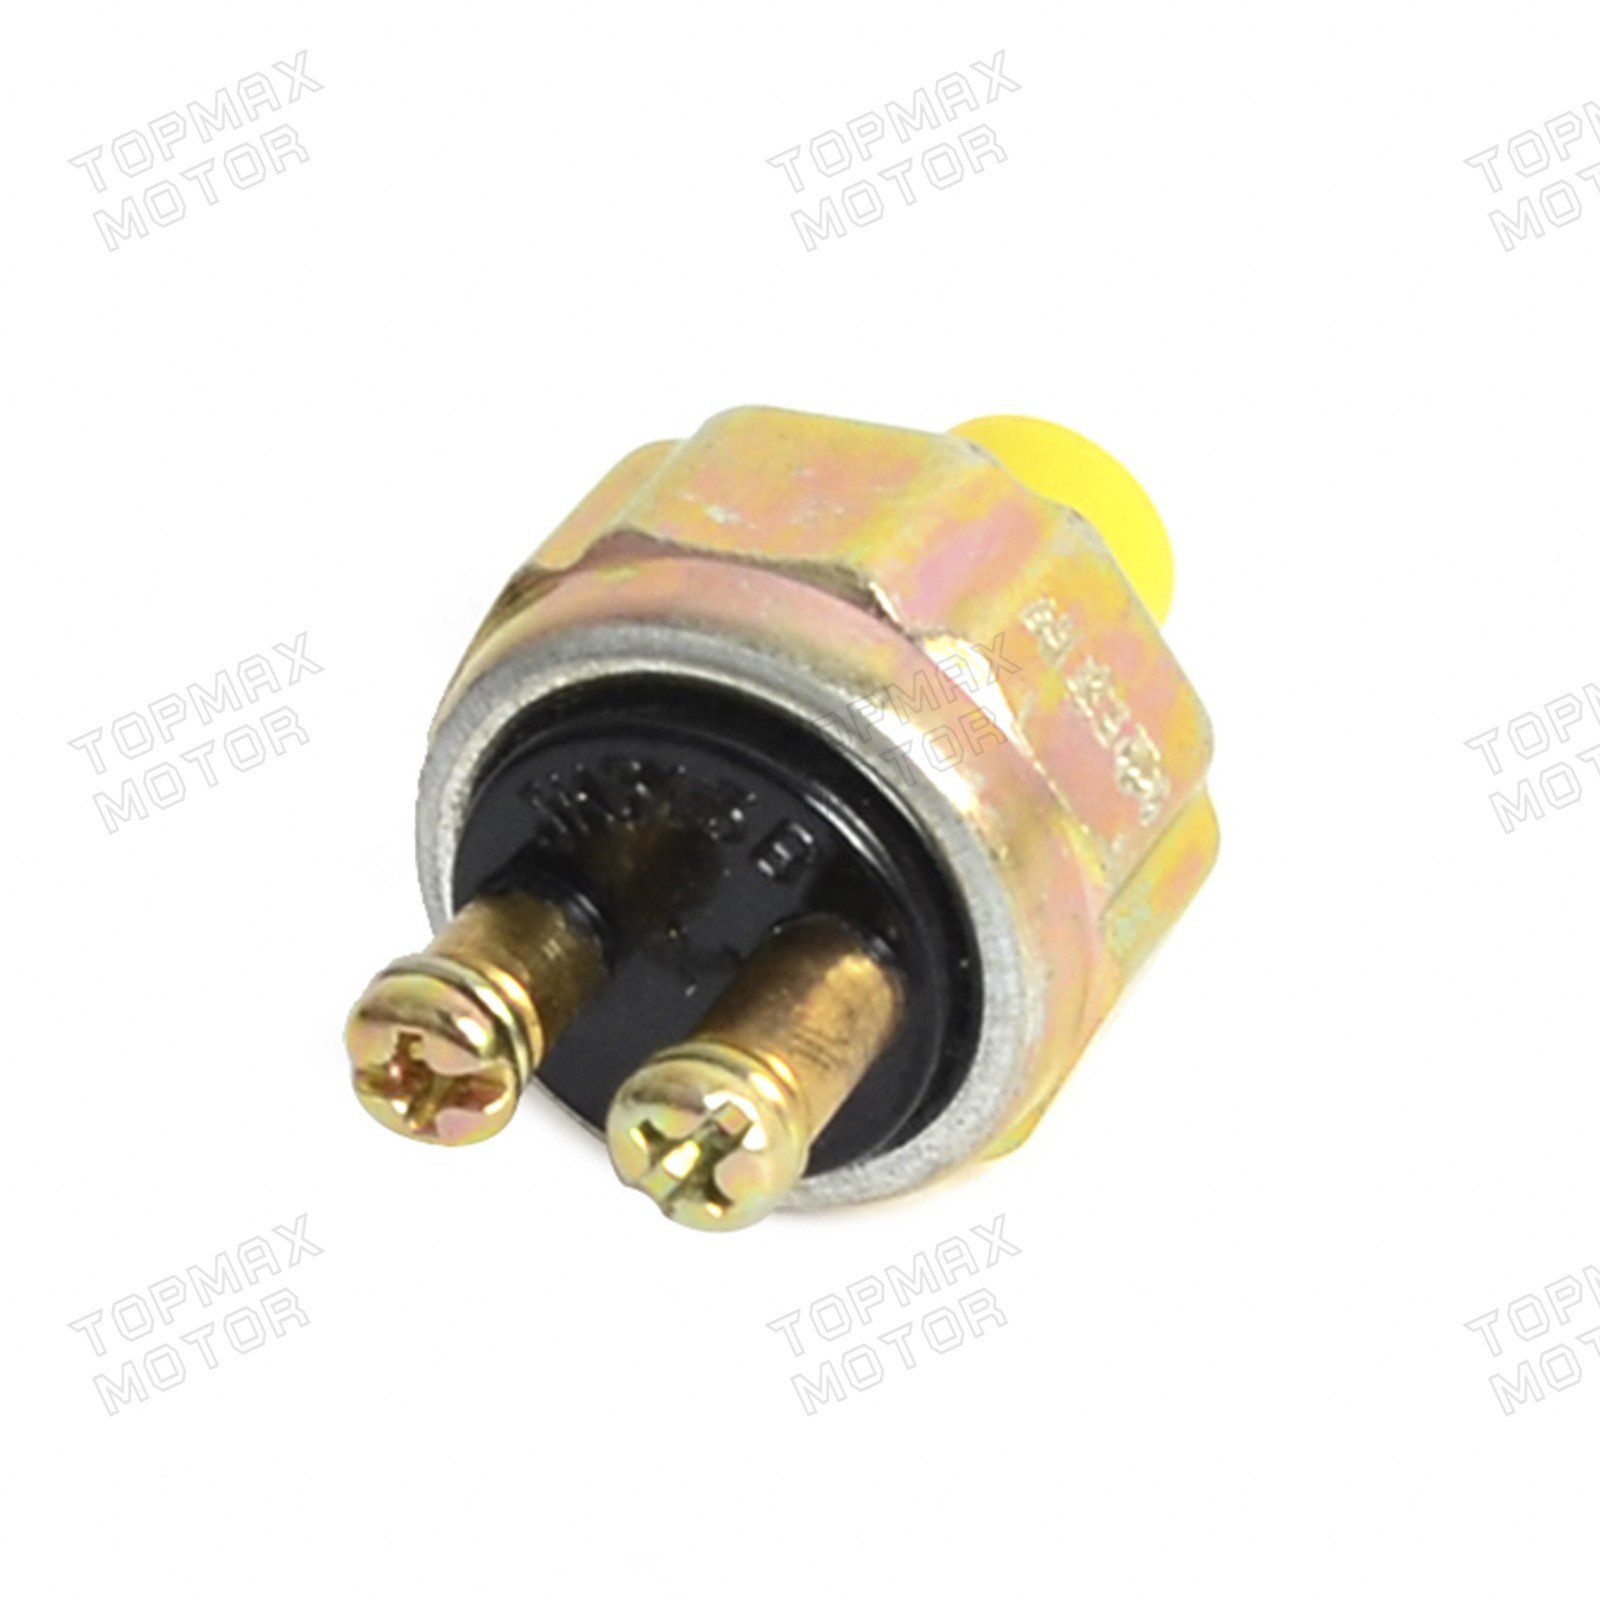 Brake Stop /& Reverse Light Switch For 90-150 250 300cc Go-Kart Dune Buggy JK613B